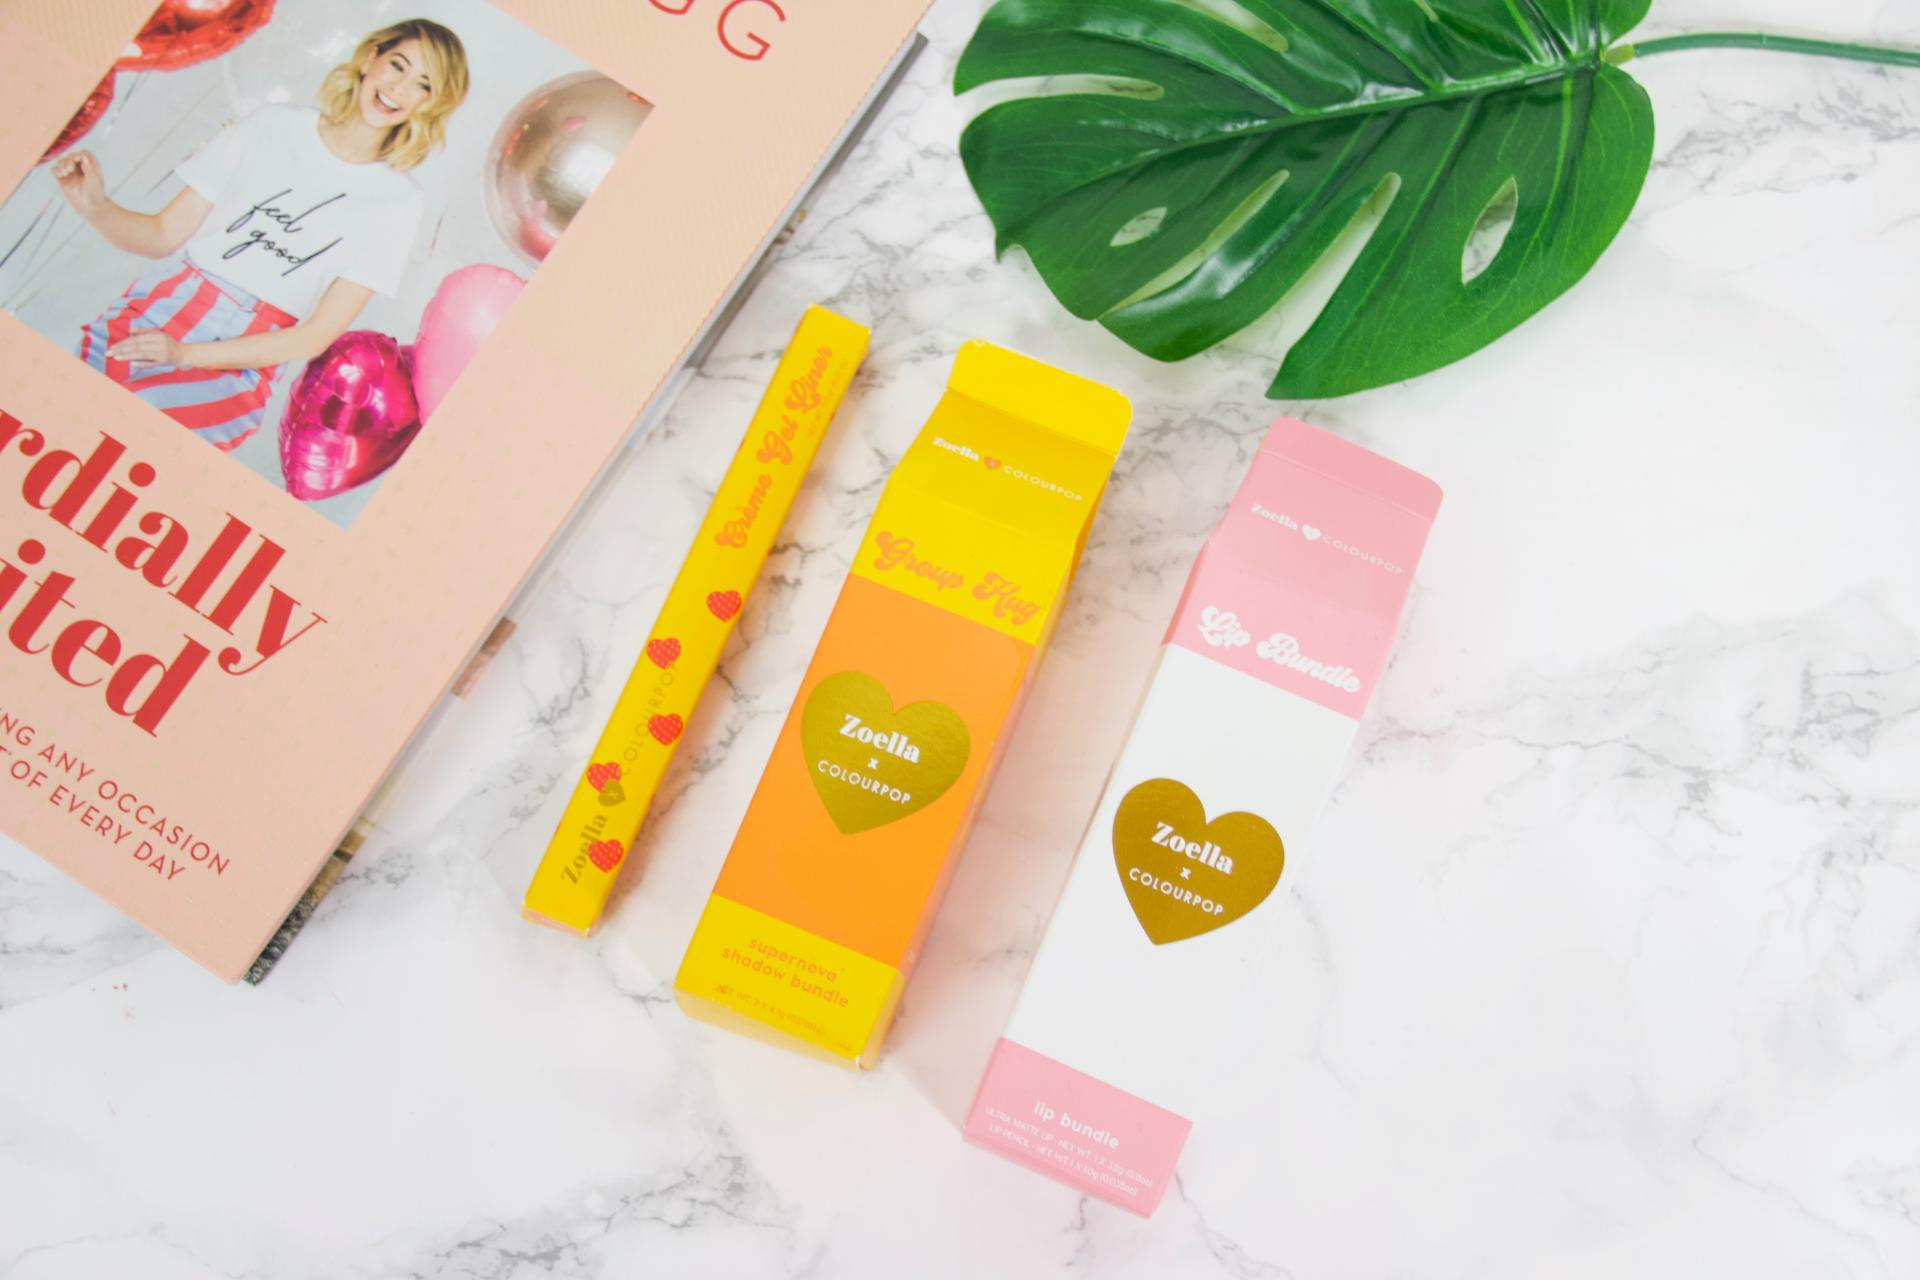 Colourpop x Zoella Brunch collectie